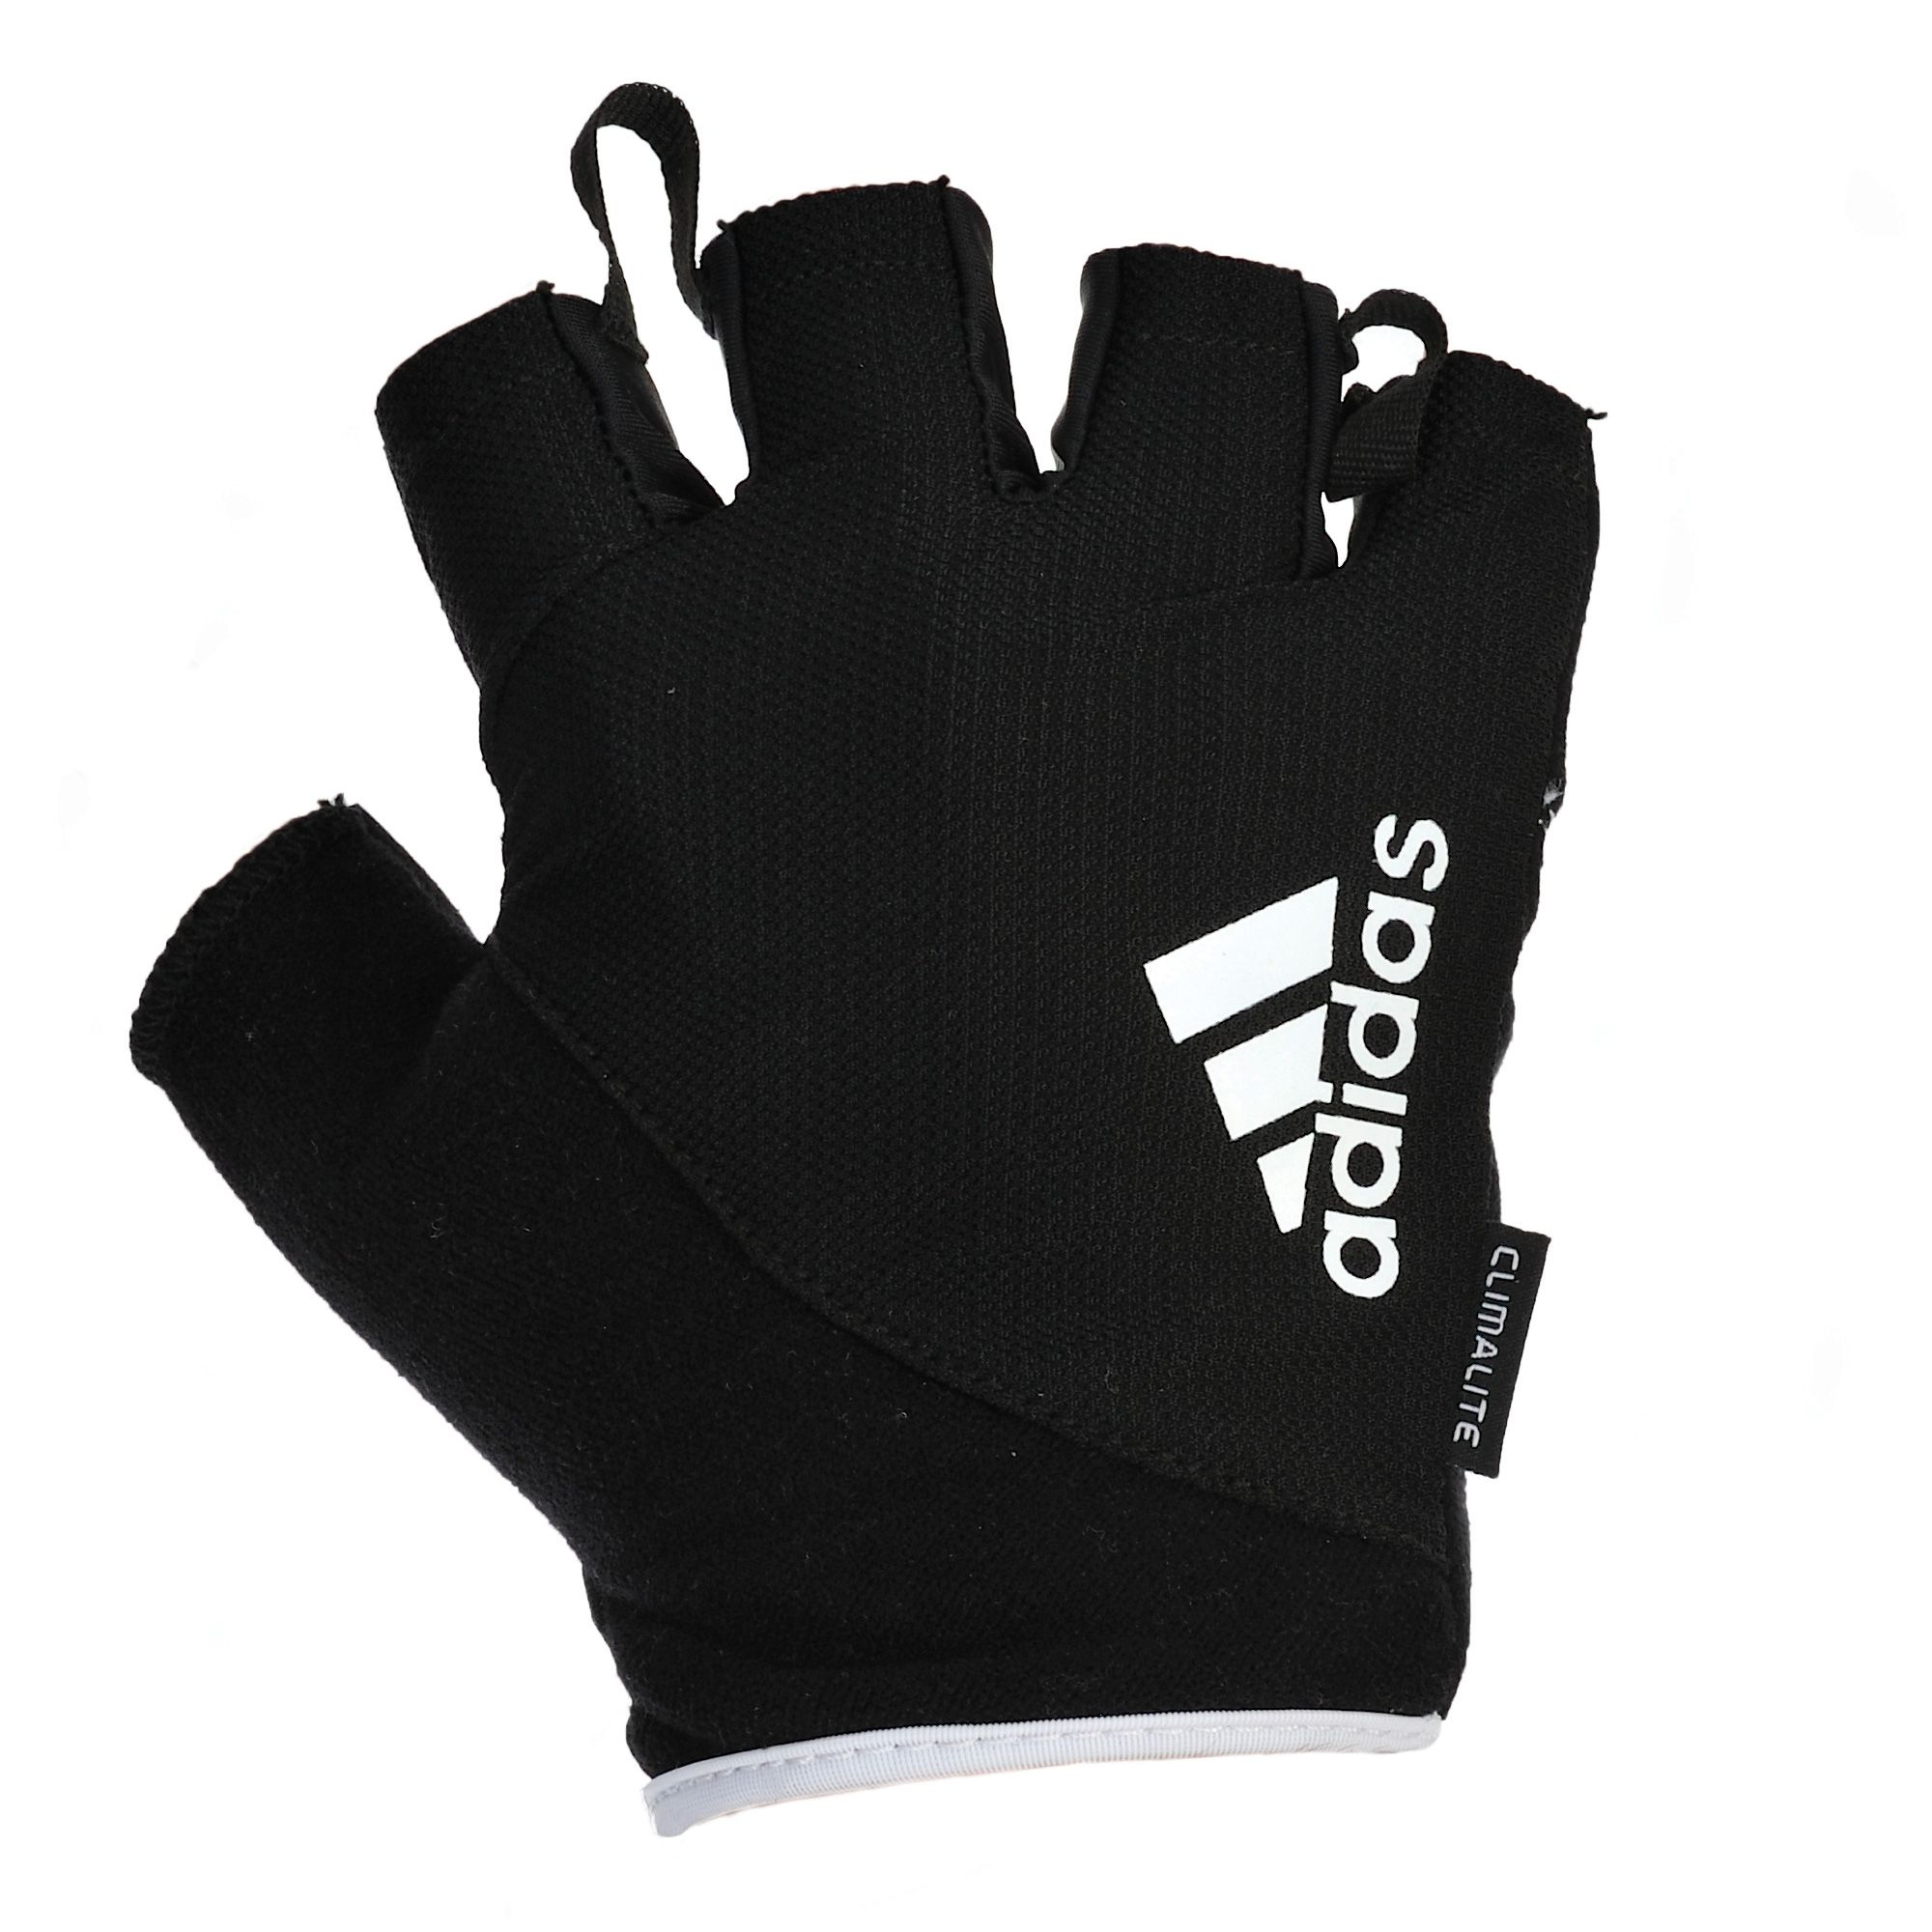 Dam Weight Lifting Gym Gloves Body Building Workout White: Adidas Essential Fingerless Weight Lifting Gloves